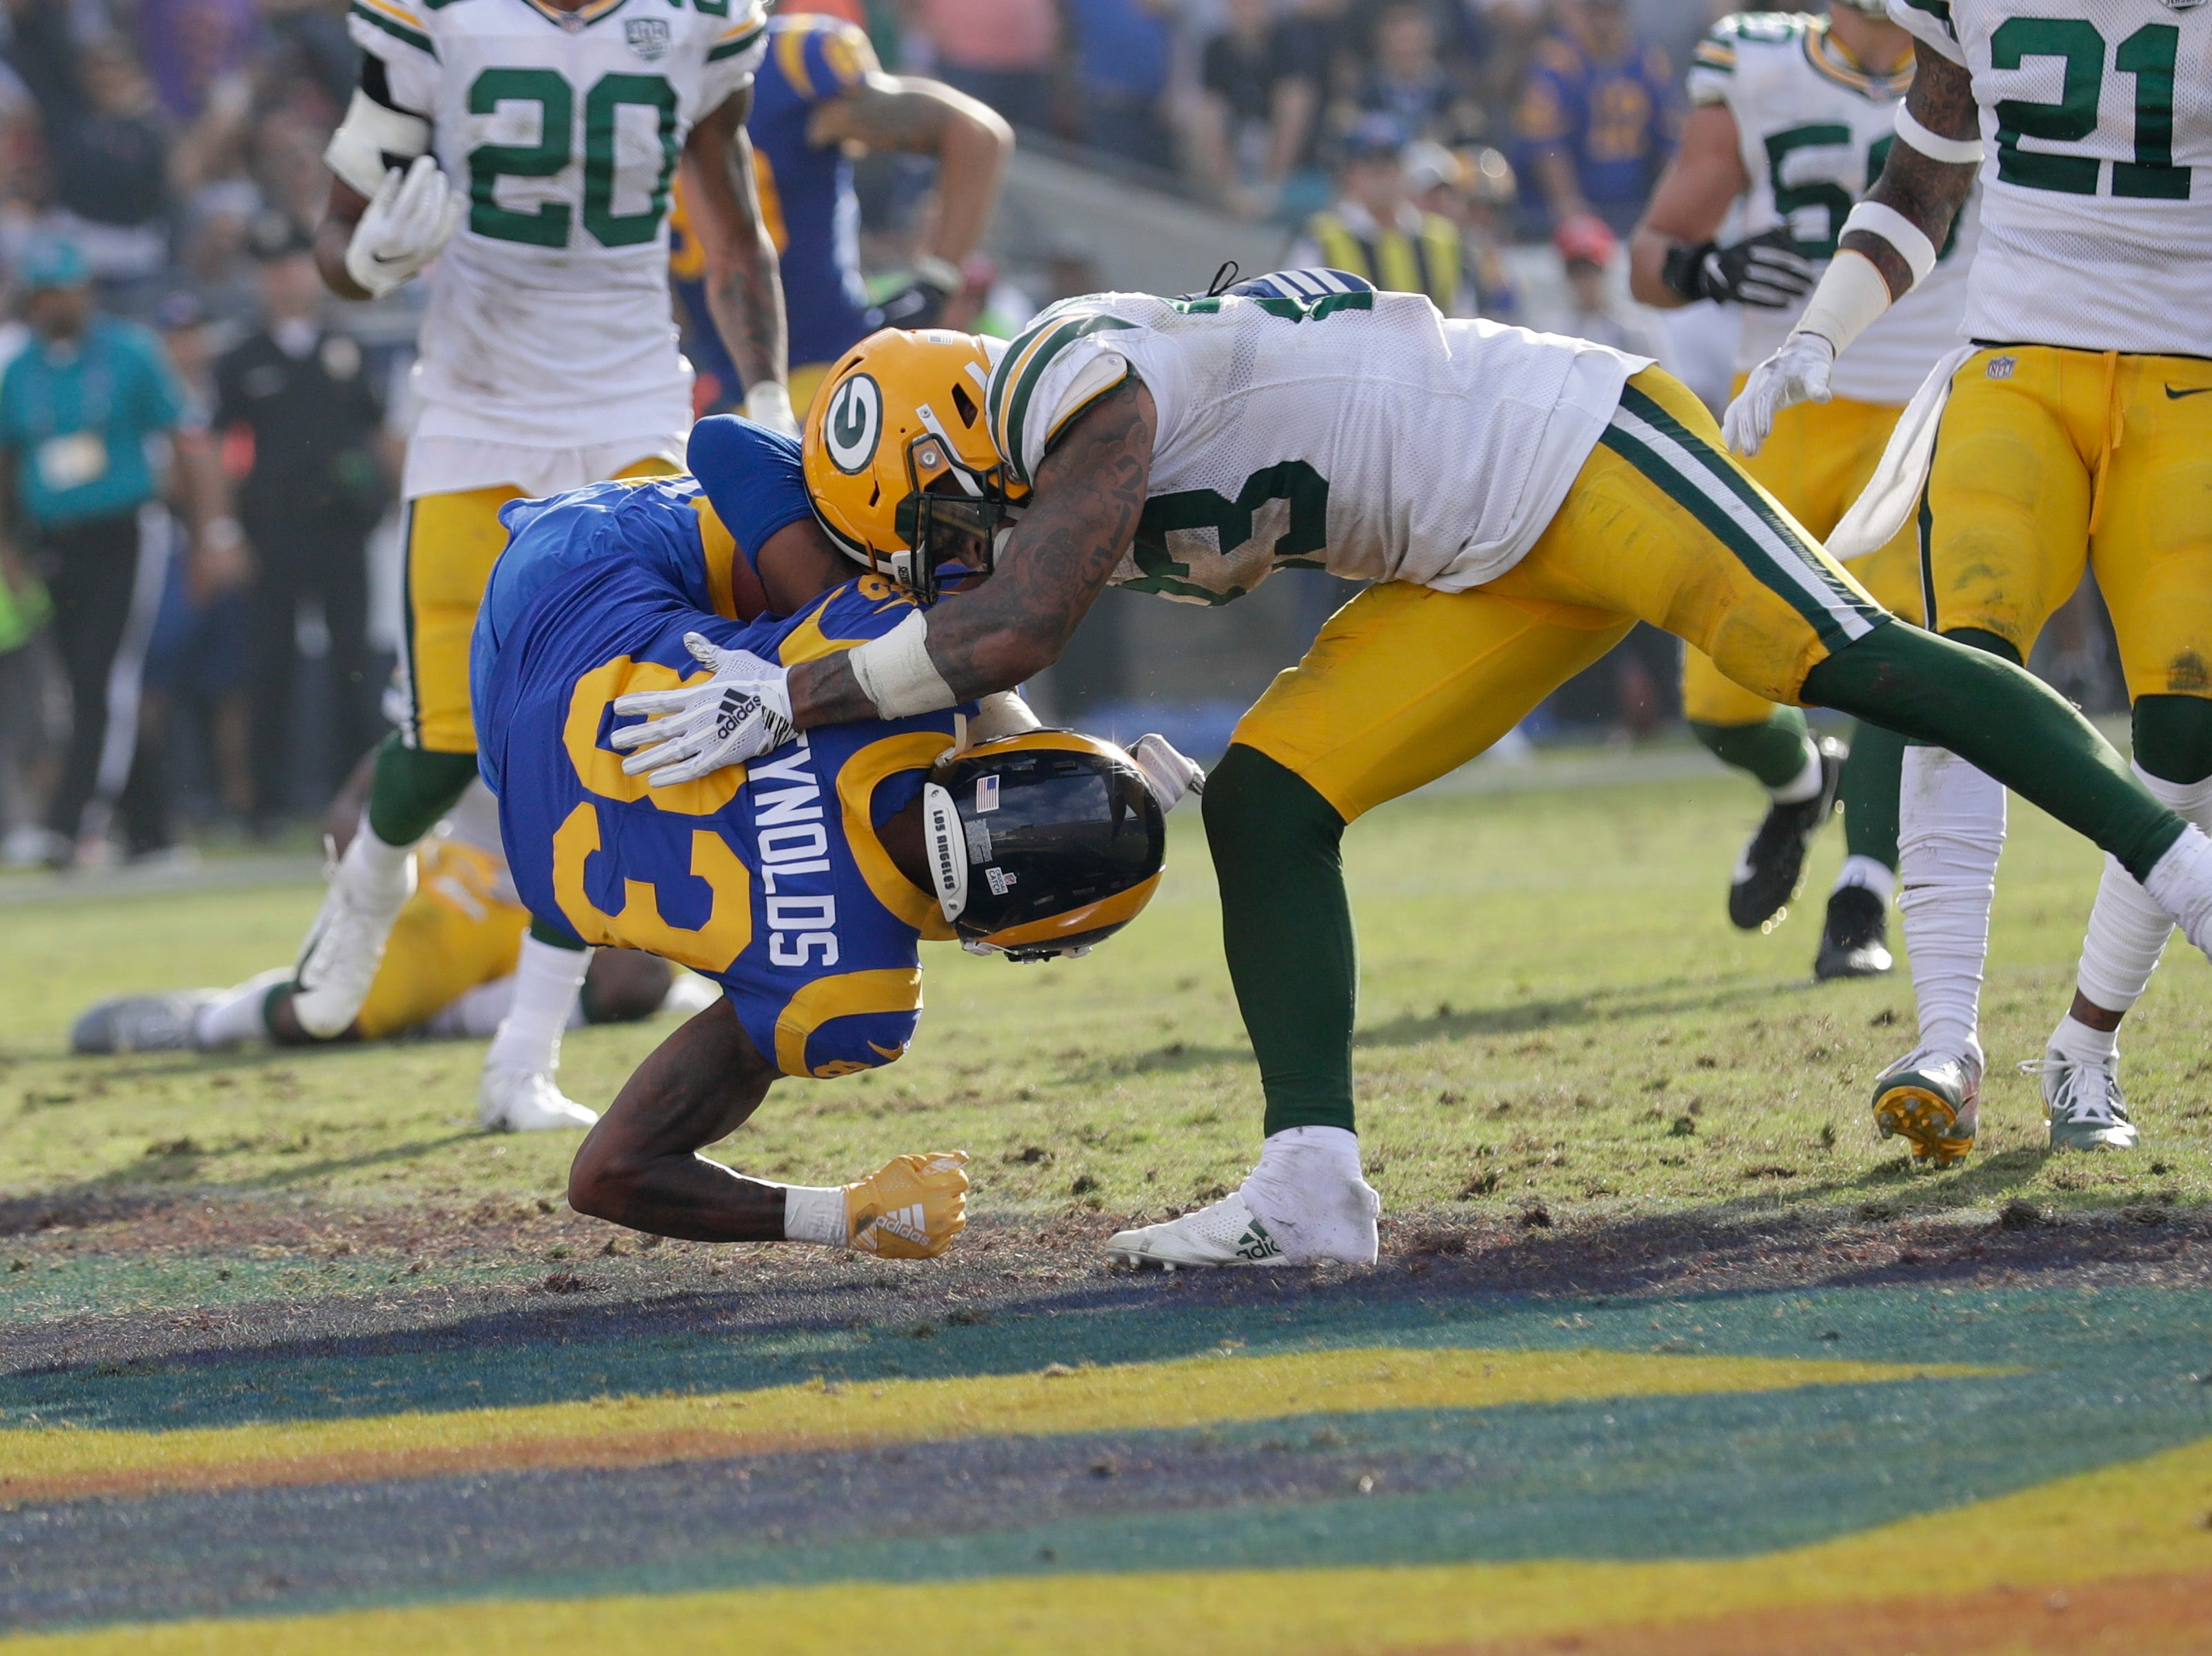 Los Angeles Rams wide receiver Josh Reynolds leaps into the end zone for a touchdown during the second half of an NFL football game against the Green Bay Packers, Sunday, Oct. 28, 2018, in Los Angeles. (AP Photo/Marcio Jose Sanchez)